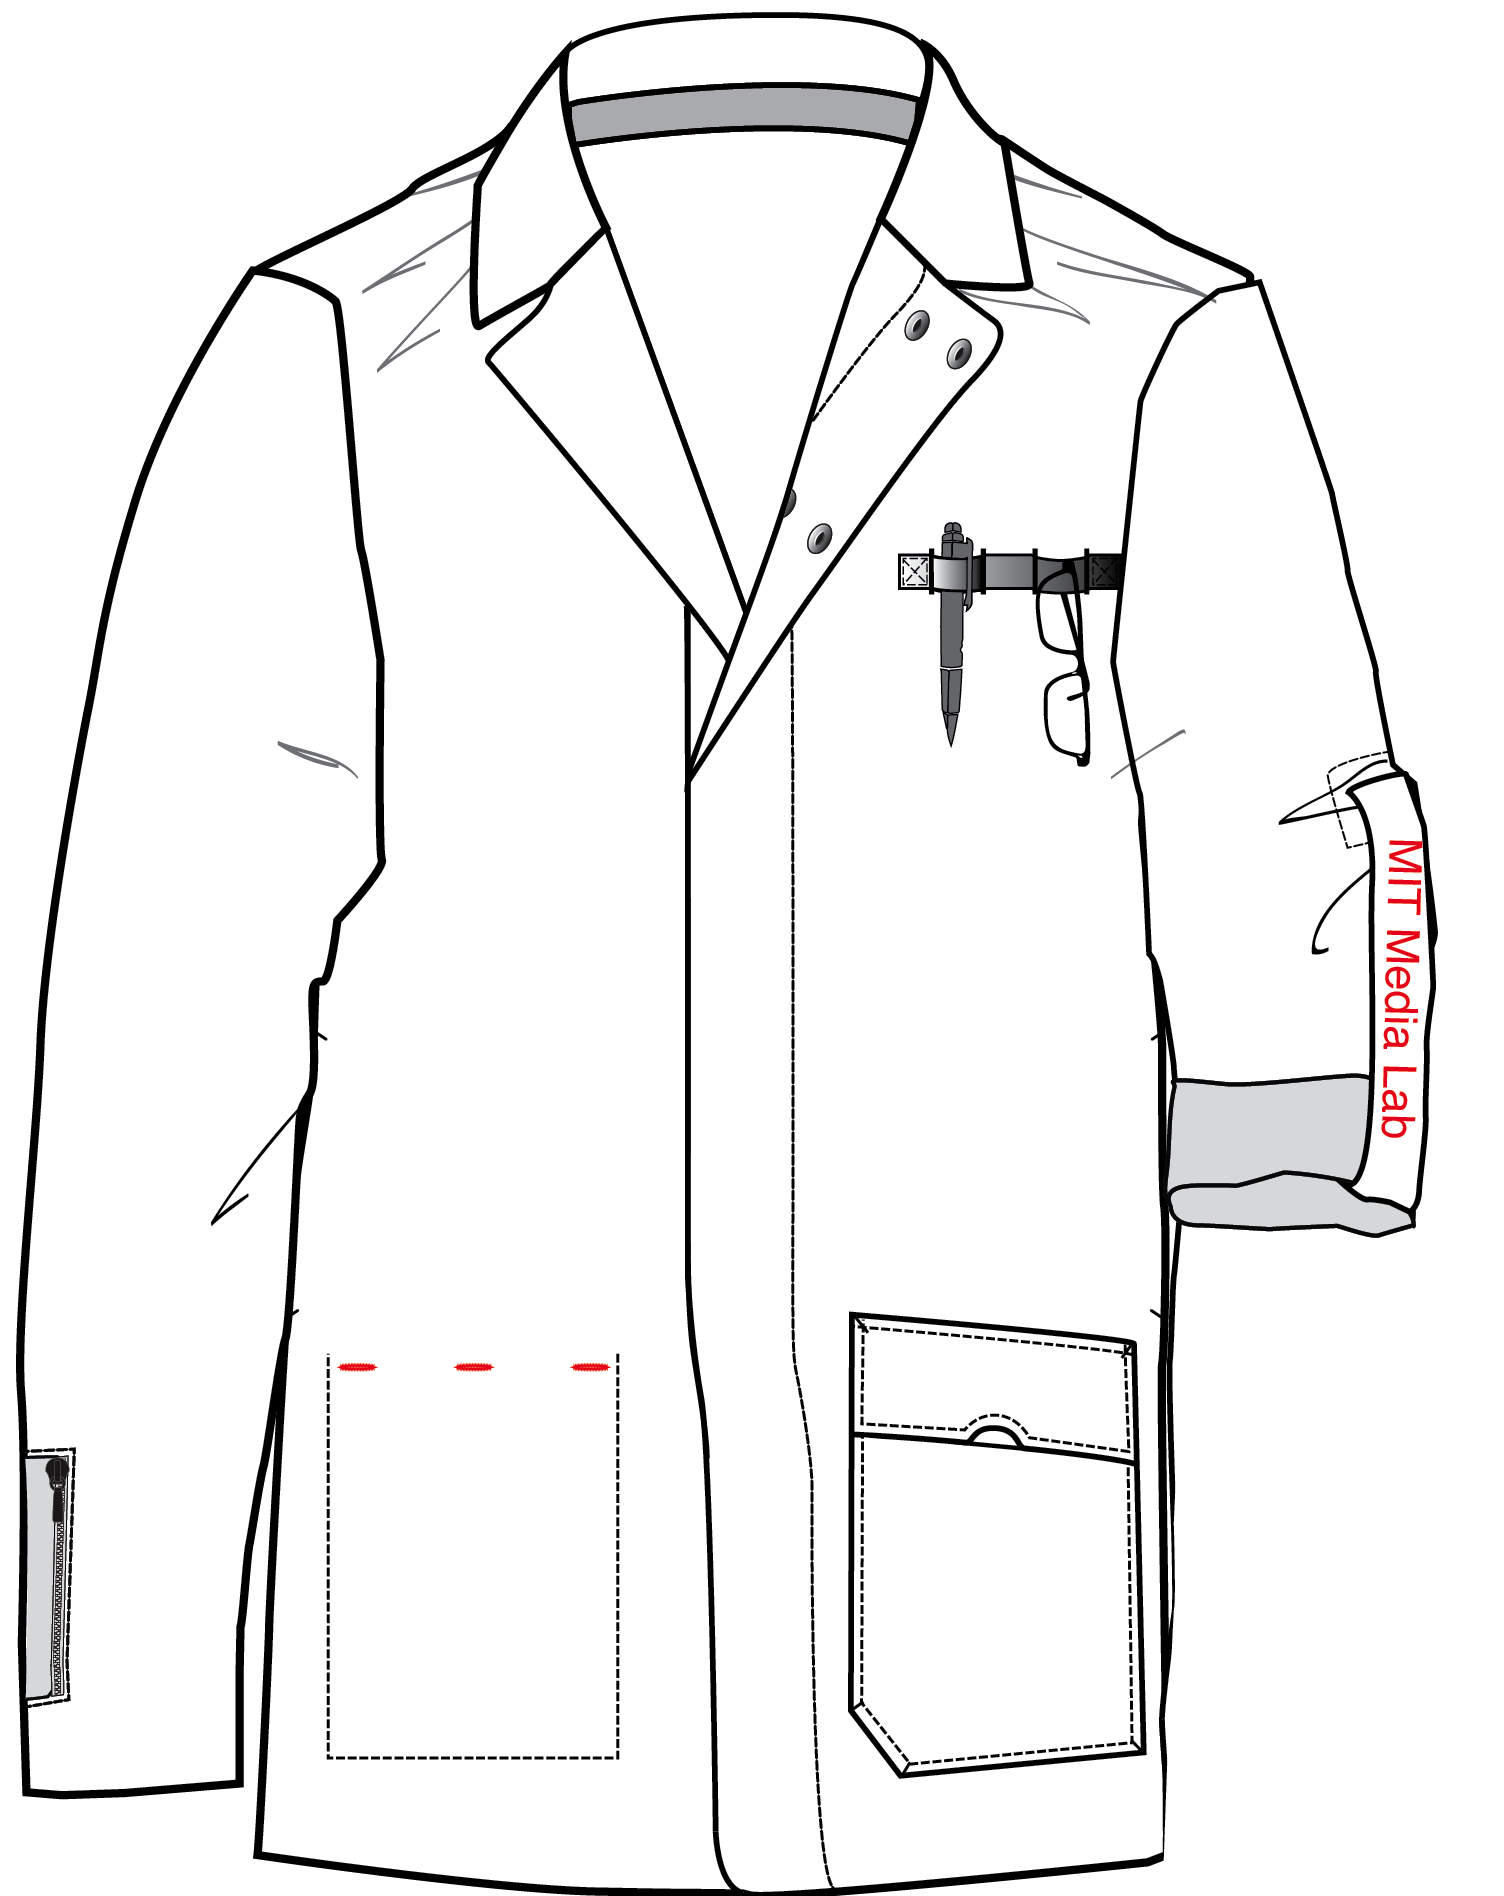 Lab Coat Sketch at PaintingValley.com.